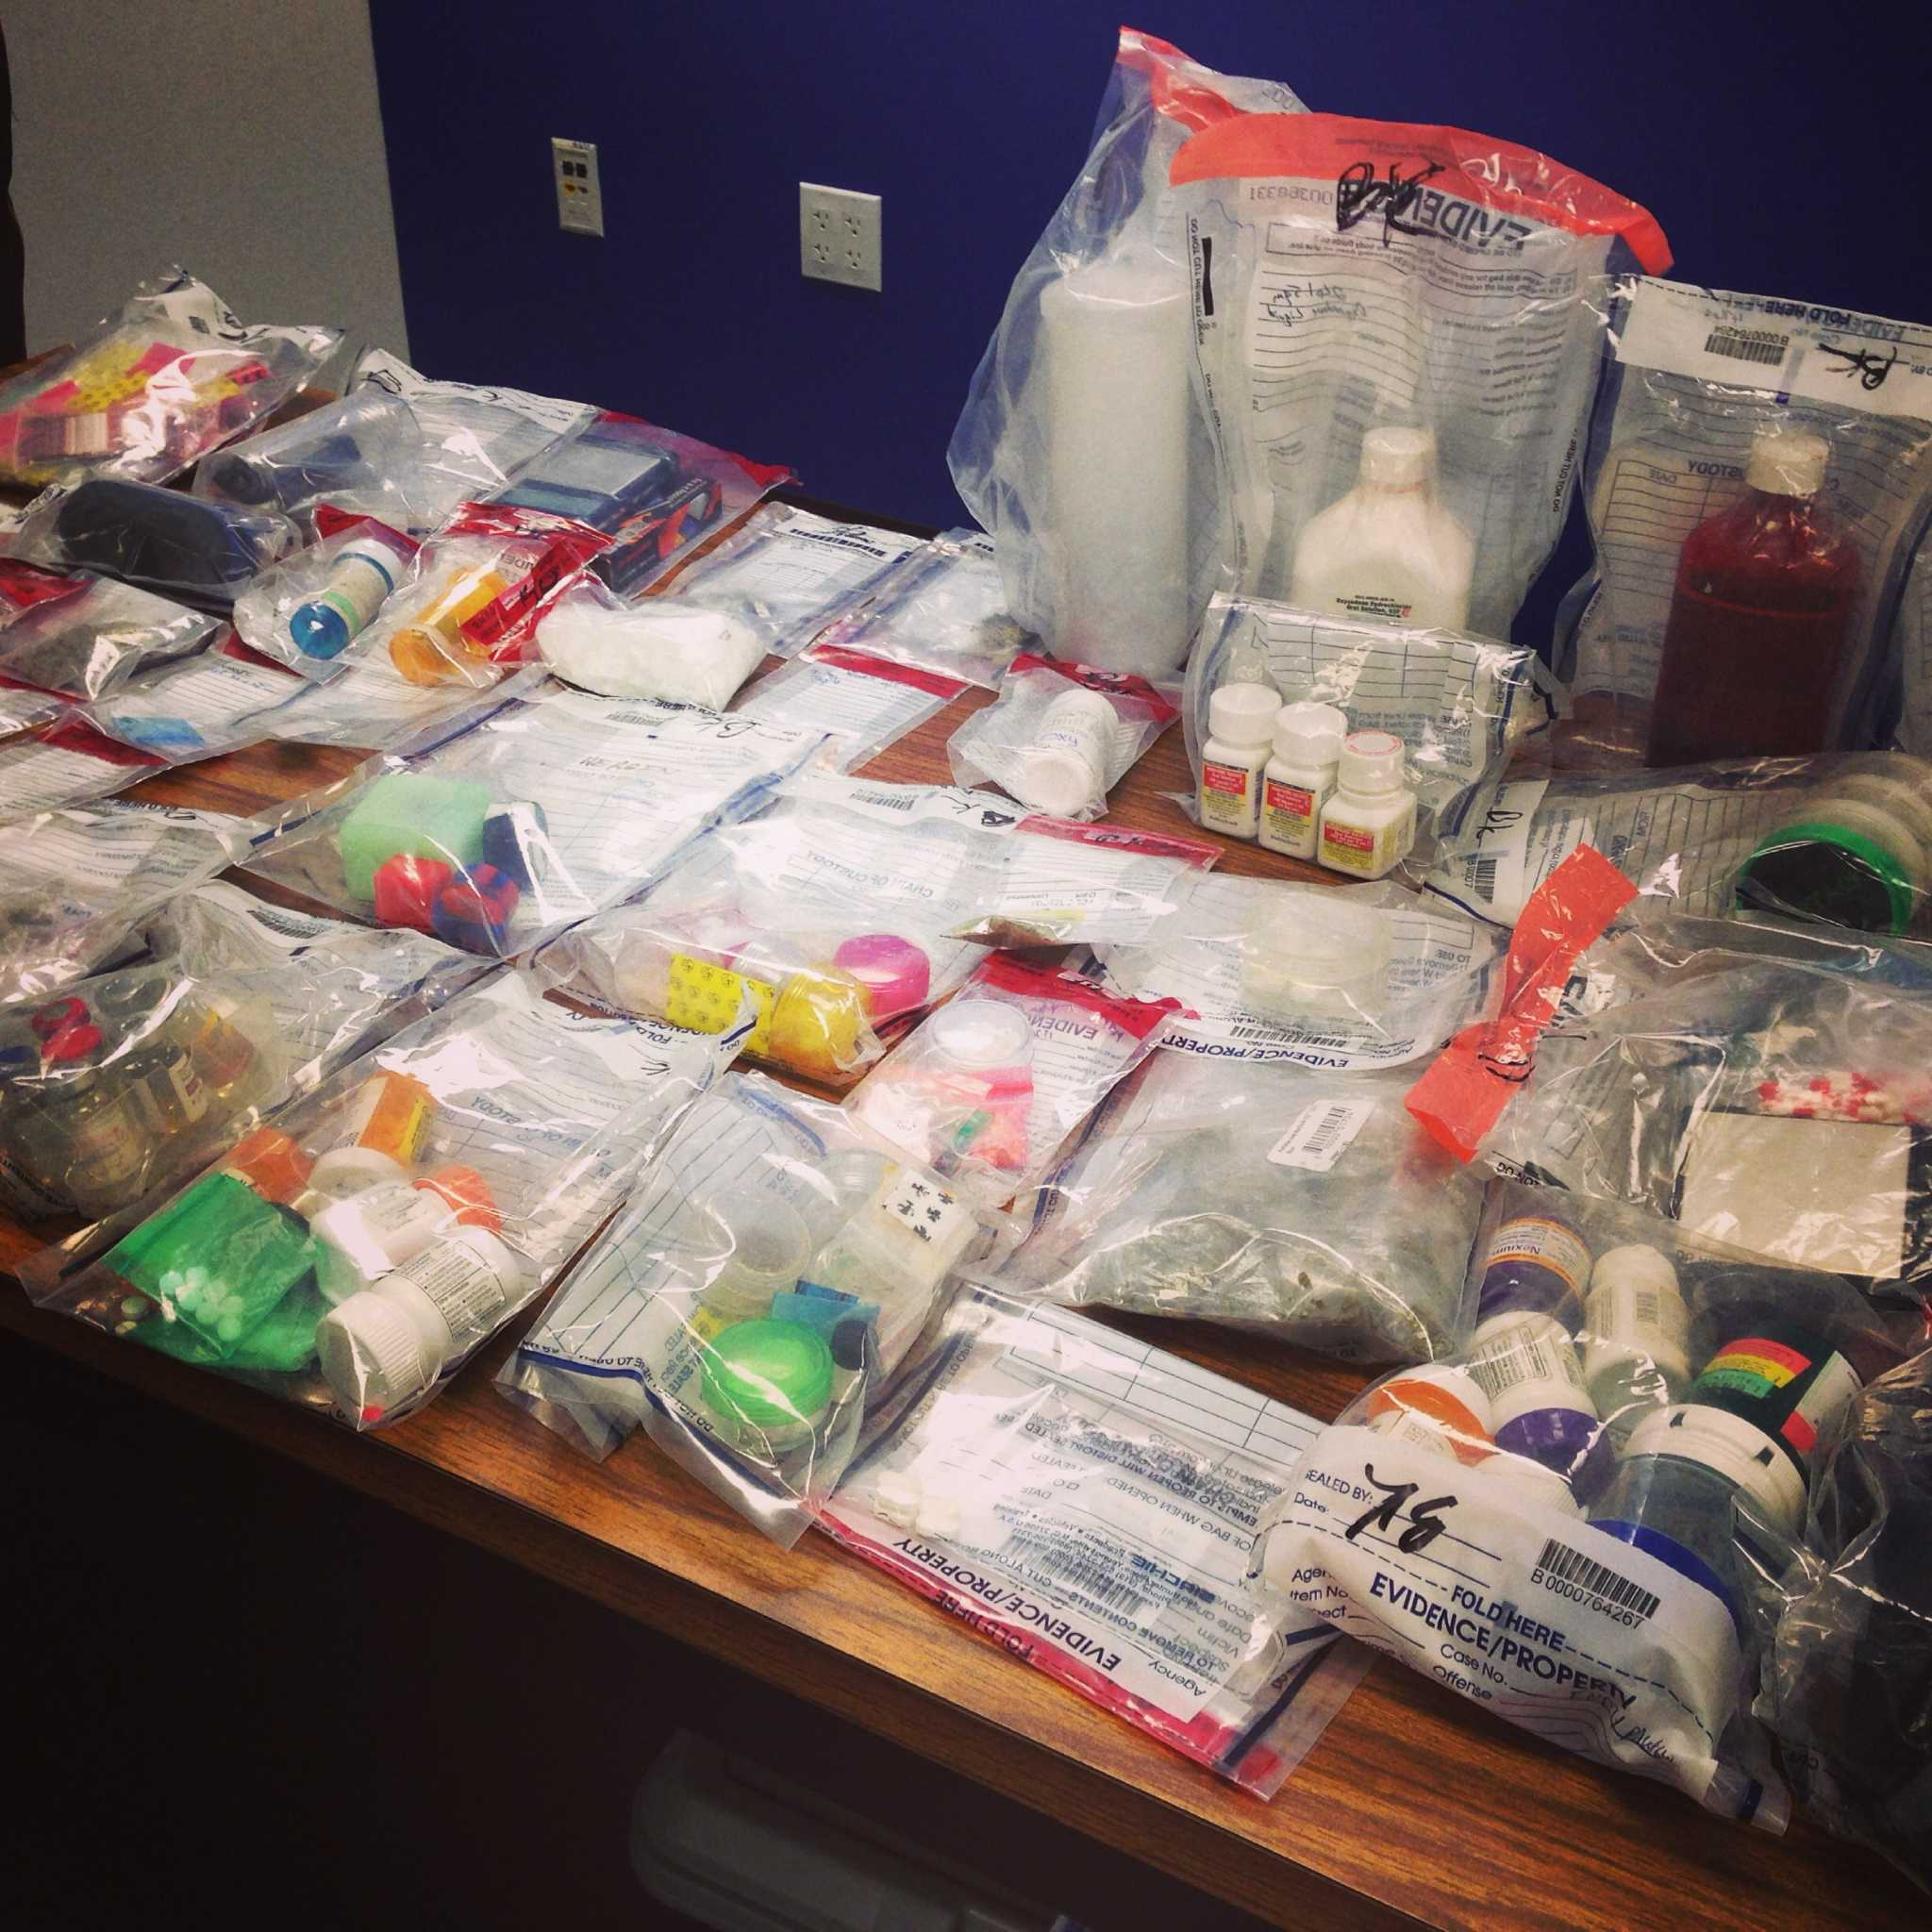 Human growth hormones, steroids seized at Magnolia home